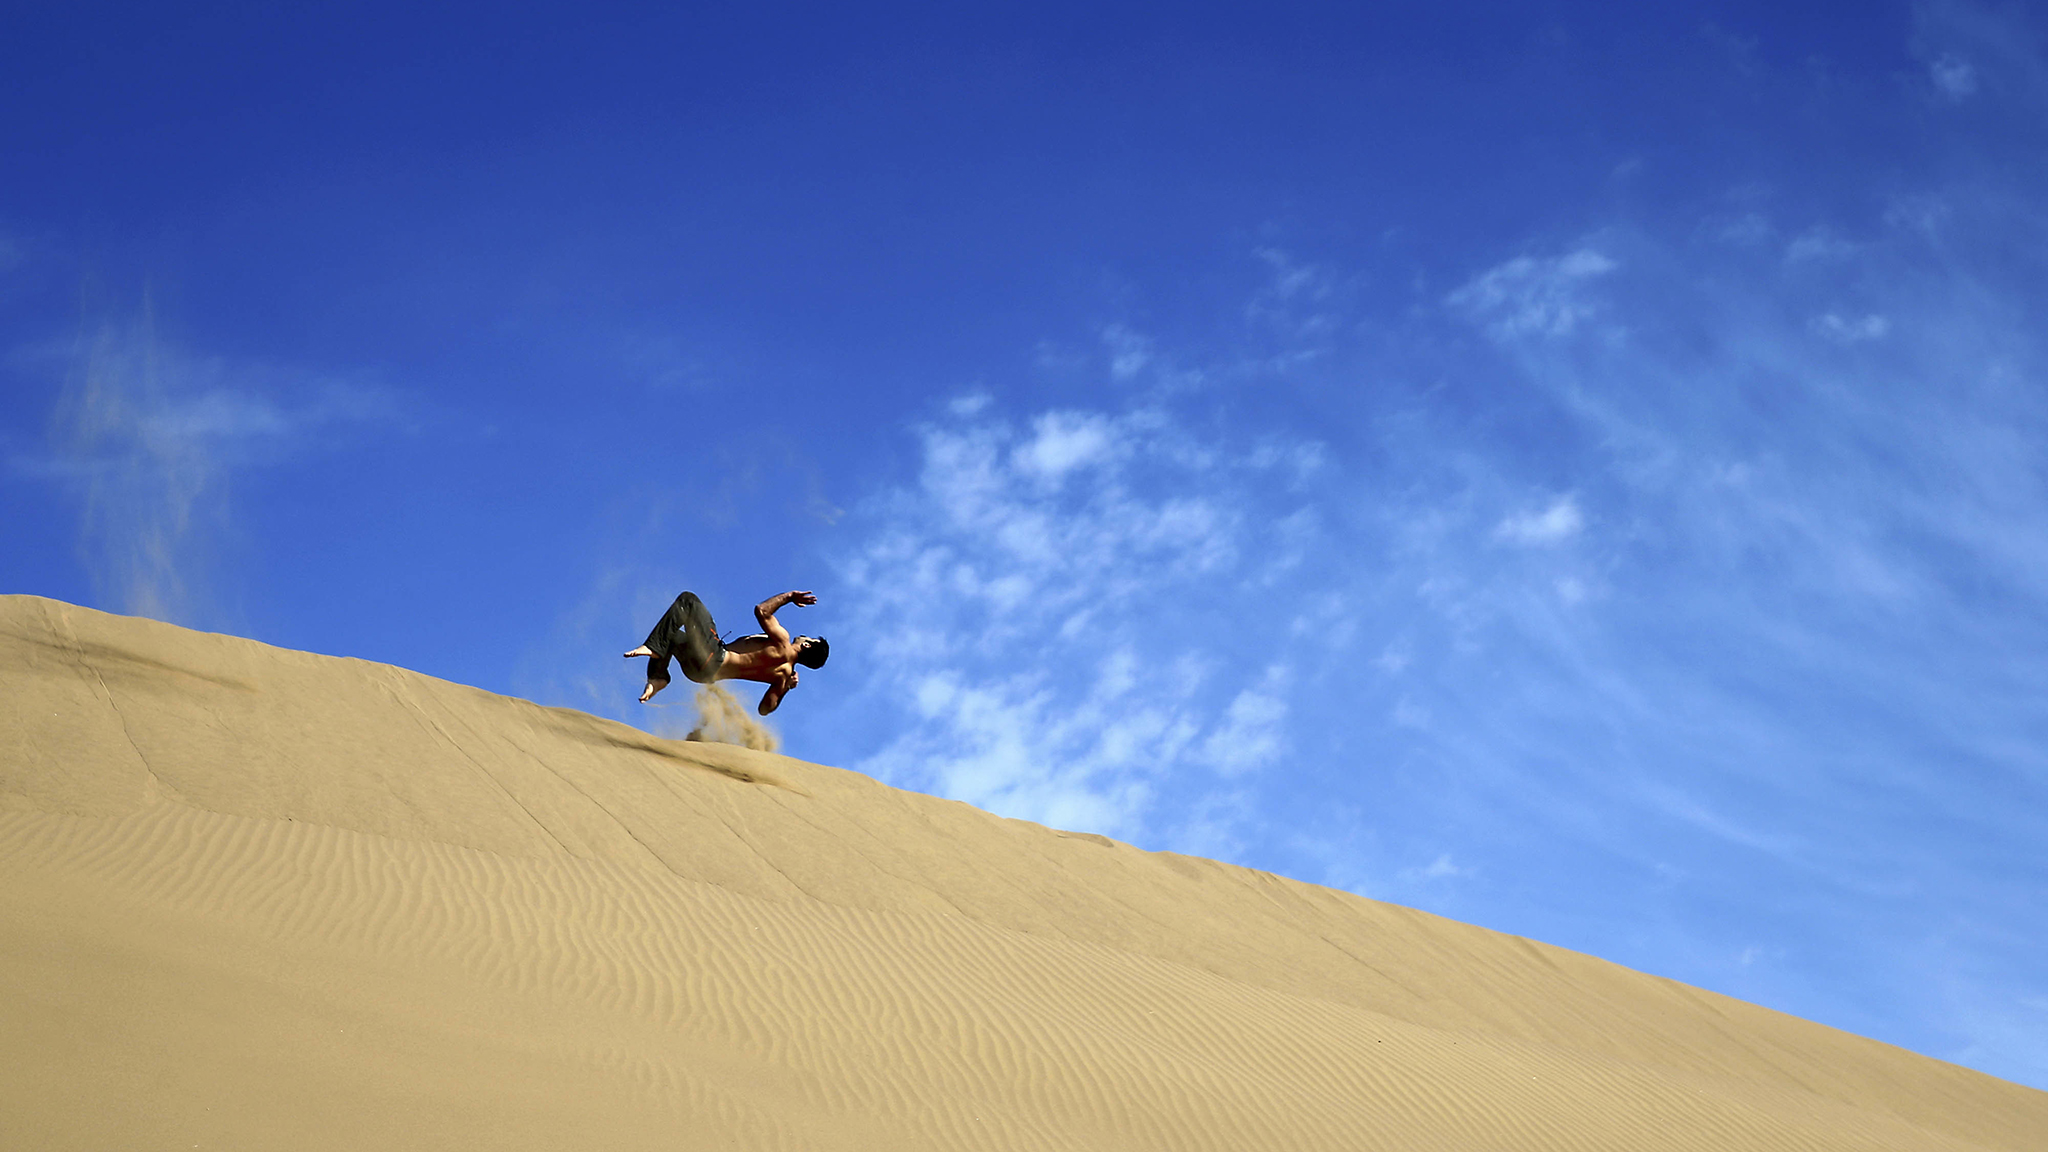 In this picture taken on Thursday, Dec. 1, 2016, an Iranian man flips on the sands while enjoying his weekend in the Mesr desert about 305 miles (500 kilometers) southeast of the capital Tehran, Iran. Deserts make up parts of Iran which have recently become tourist destination for young Iranians looking for a break on their weekend. The increase in tourists to the desert has stimulated economic growth in the area. (AP Photo/Ebrahim Noroozi)